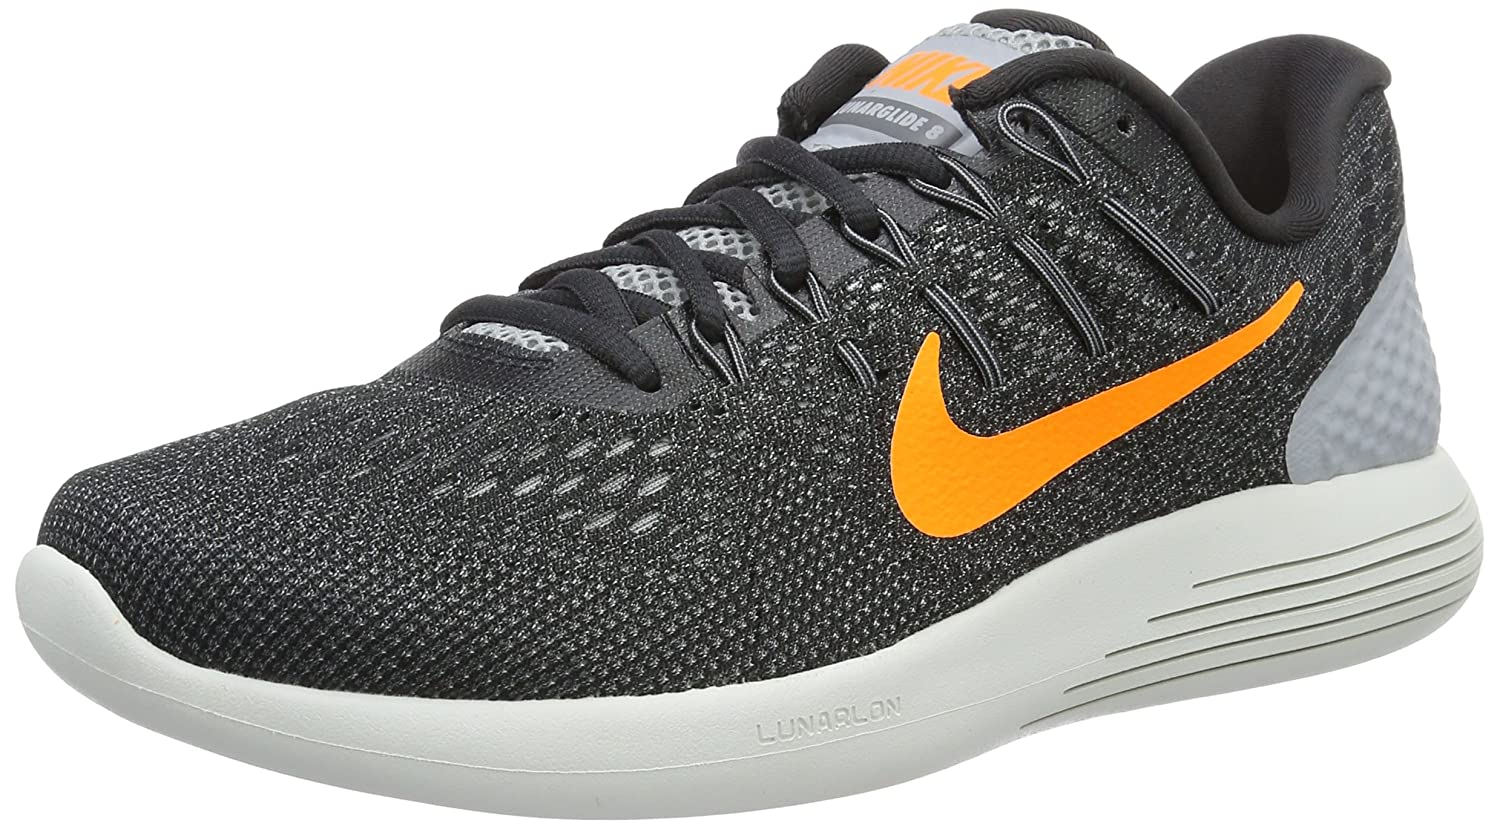 Nike Mens Lunarglide 8, Black / White - Anthracite B01CHGJRFS 8 D(M) US|Grey